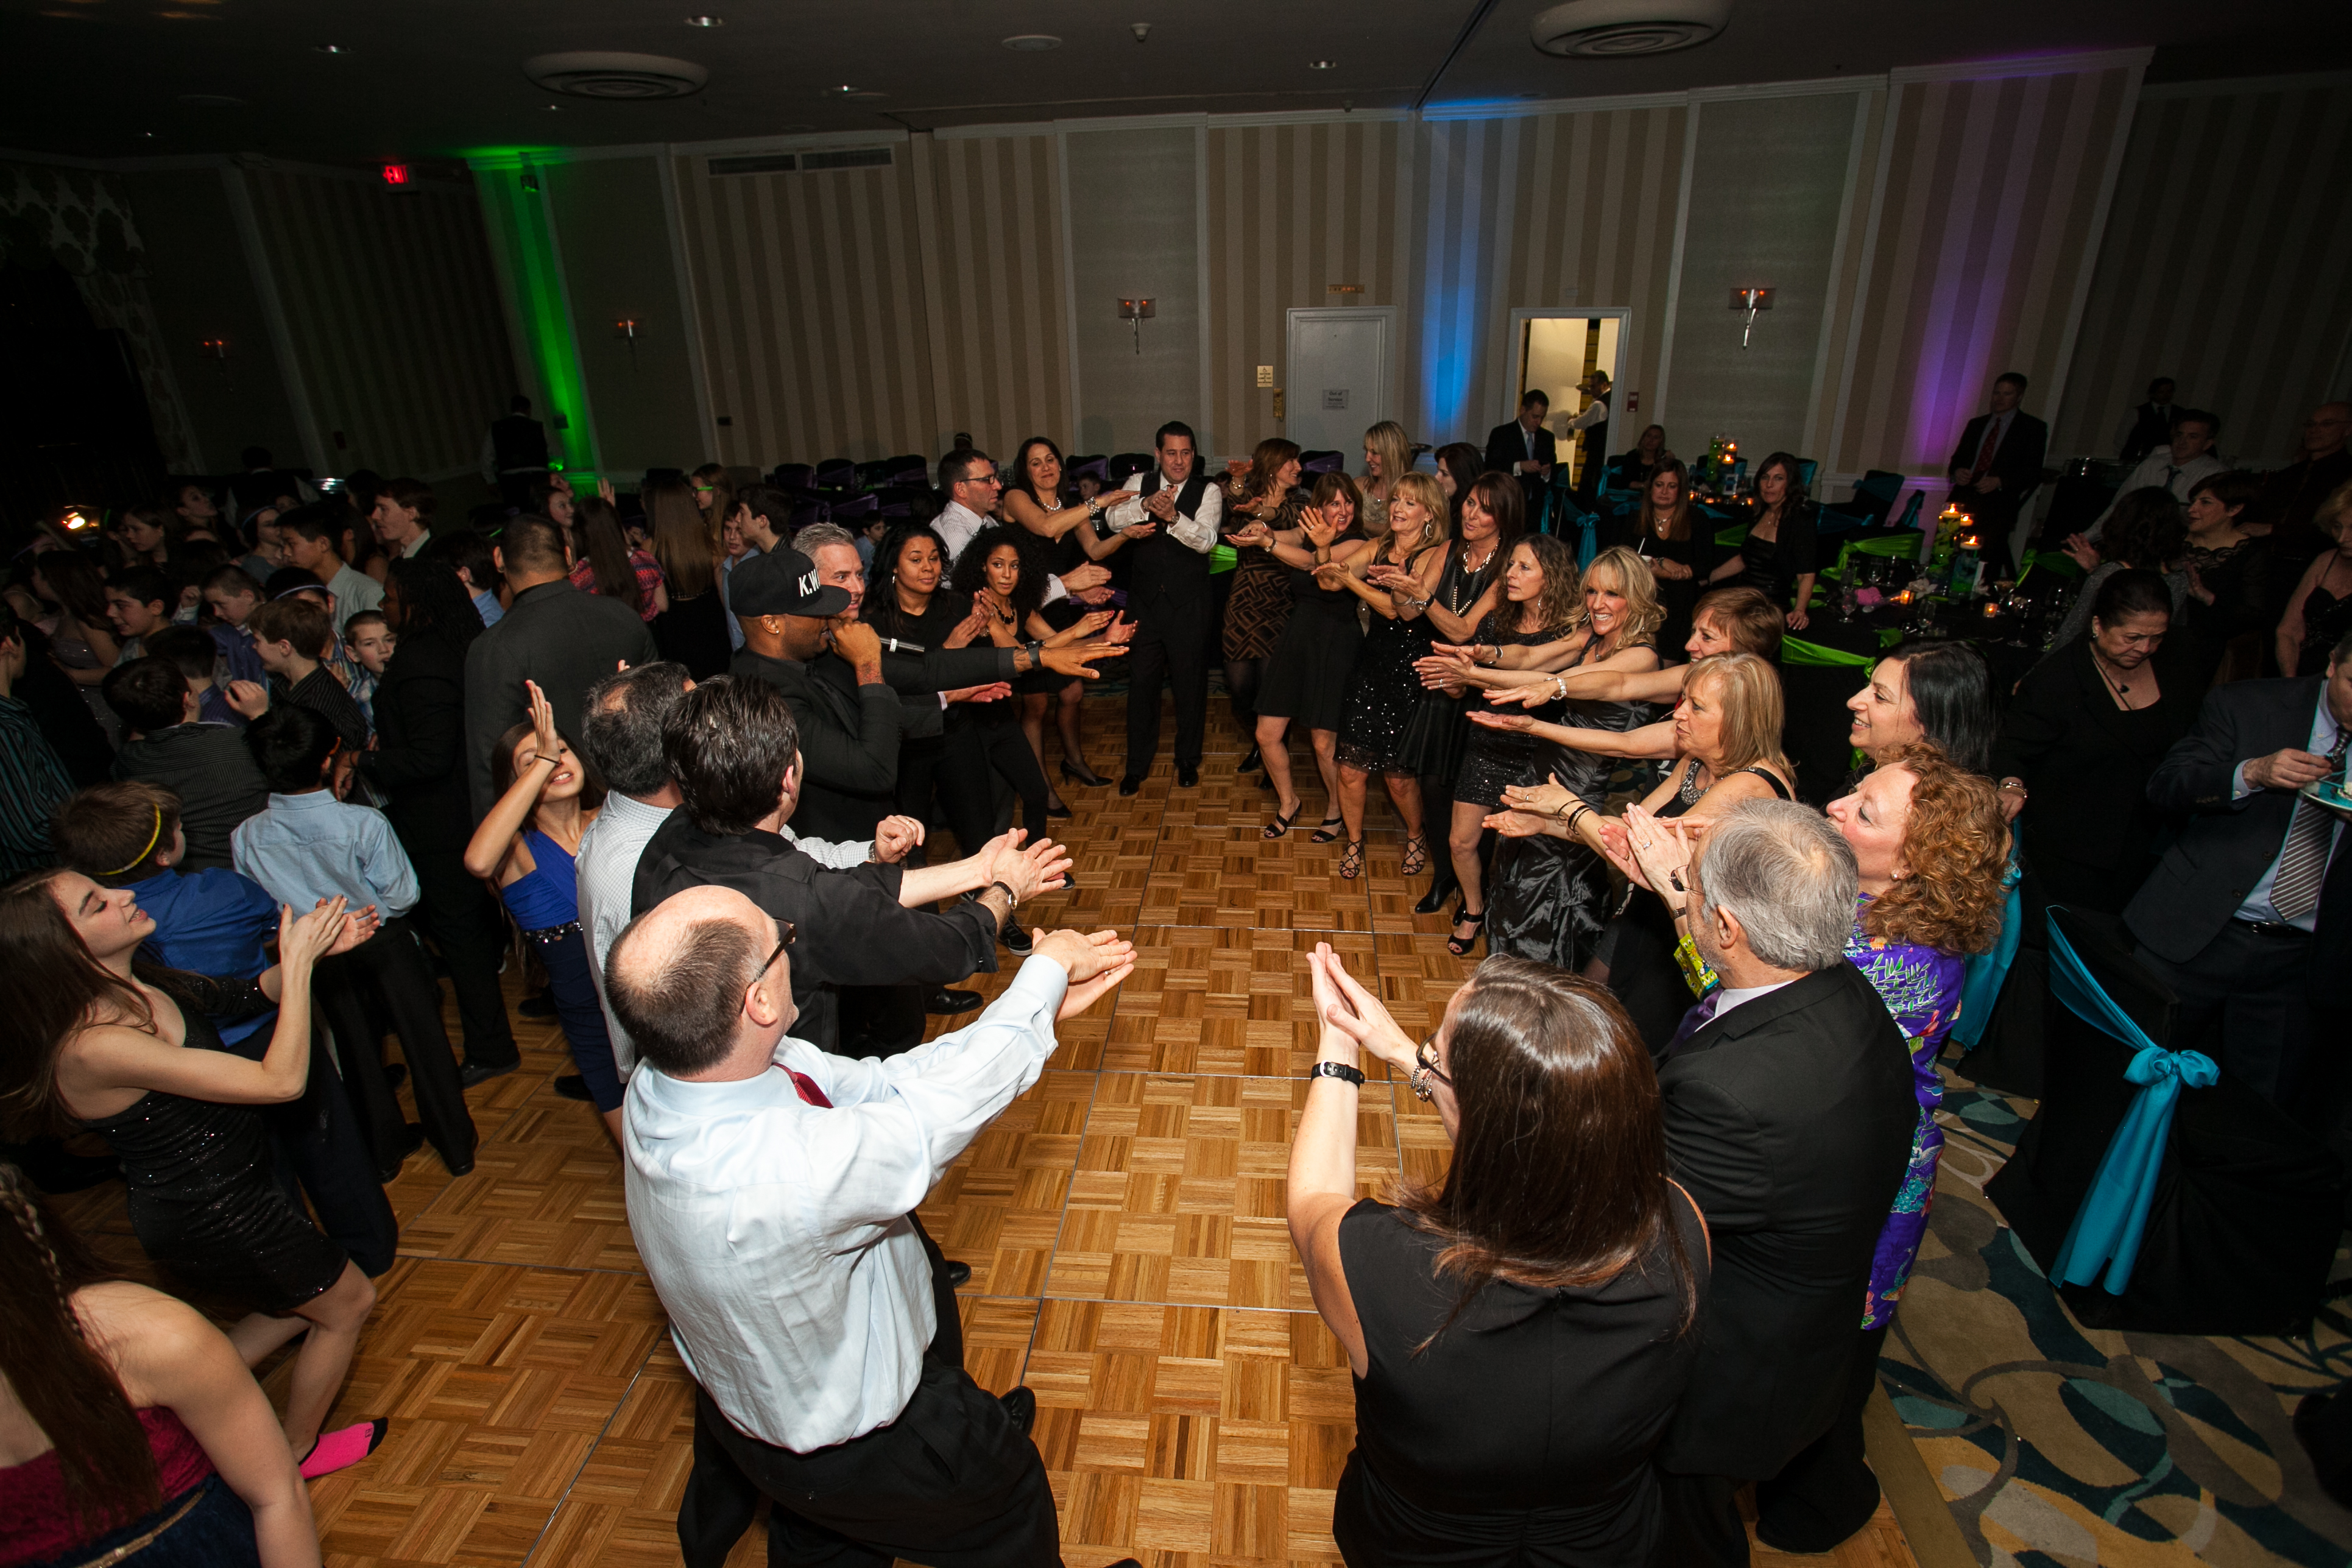 Kayla's Bat Mitzvah - Flow Entertainment, Inc